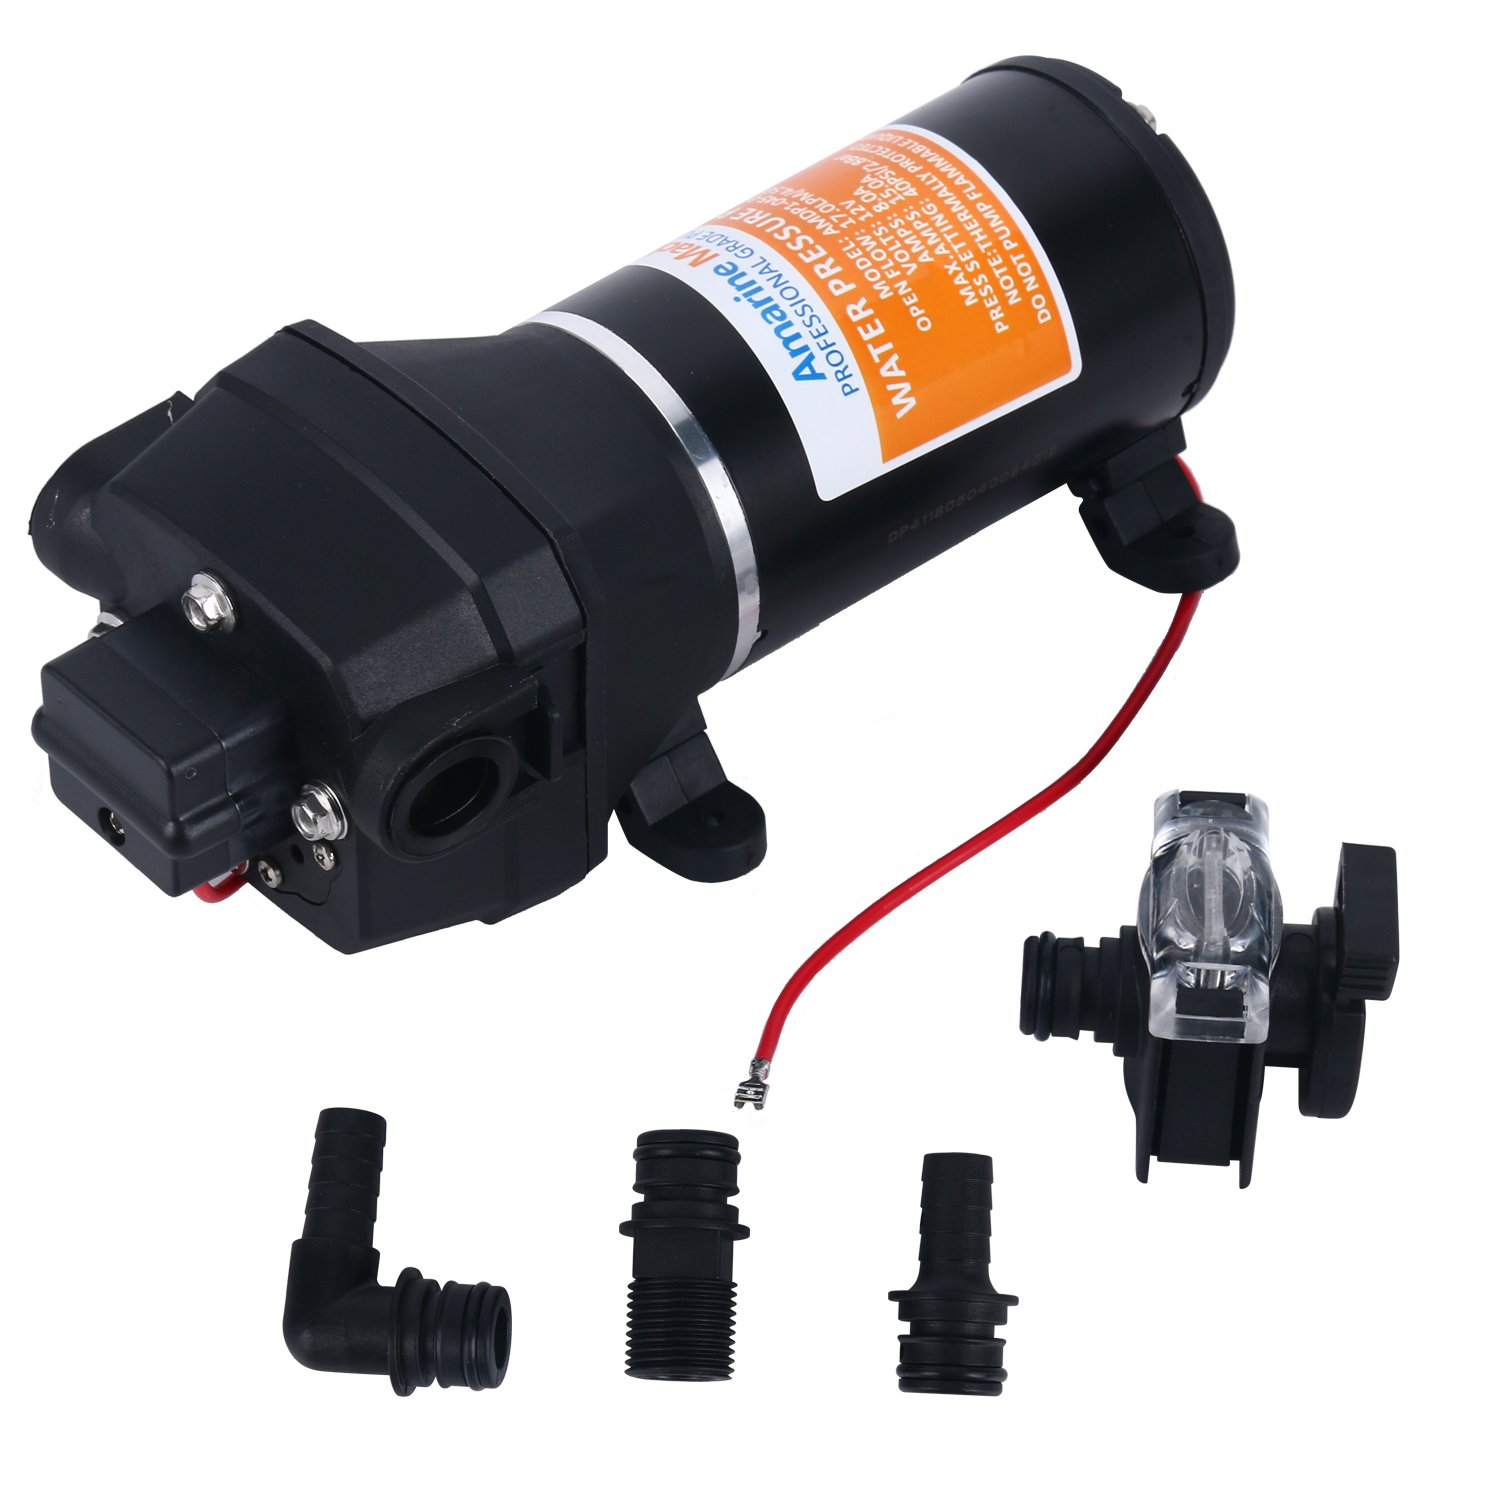 Amarine Made 12v Water Pressure Pump 17 L/m 4.5gpm 40psi Motor Home/Caravan/Boat by Amarine Made